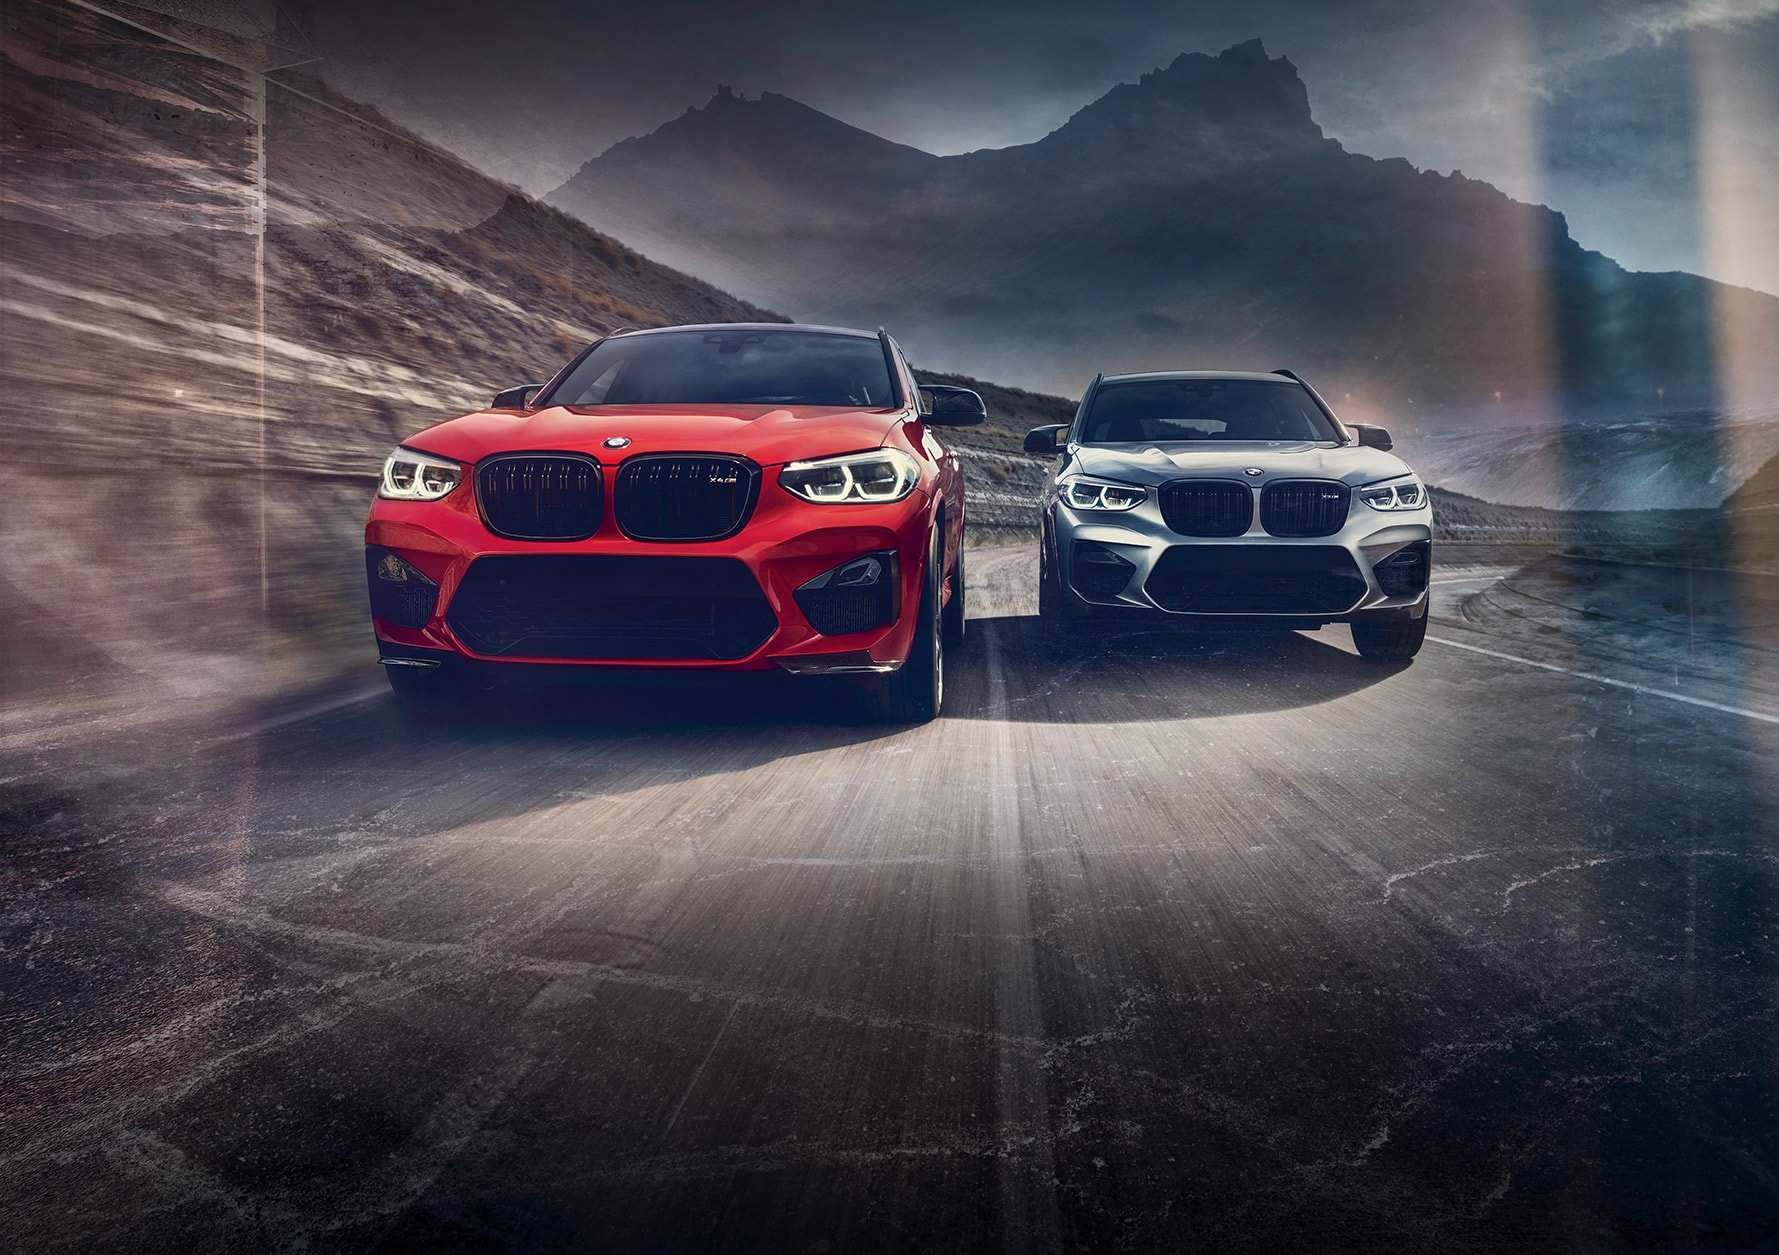 53 New 2020 BMW X3M Ordering Guide Reviews with 2020 BMW X3M Ordering Guide